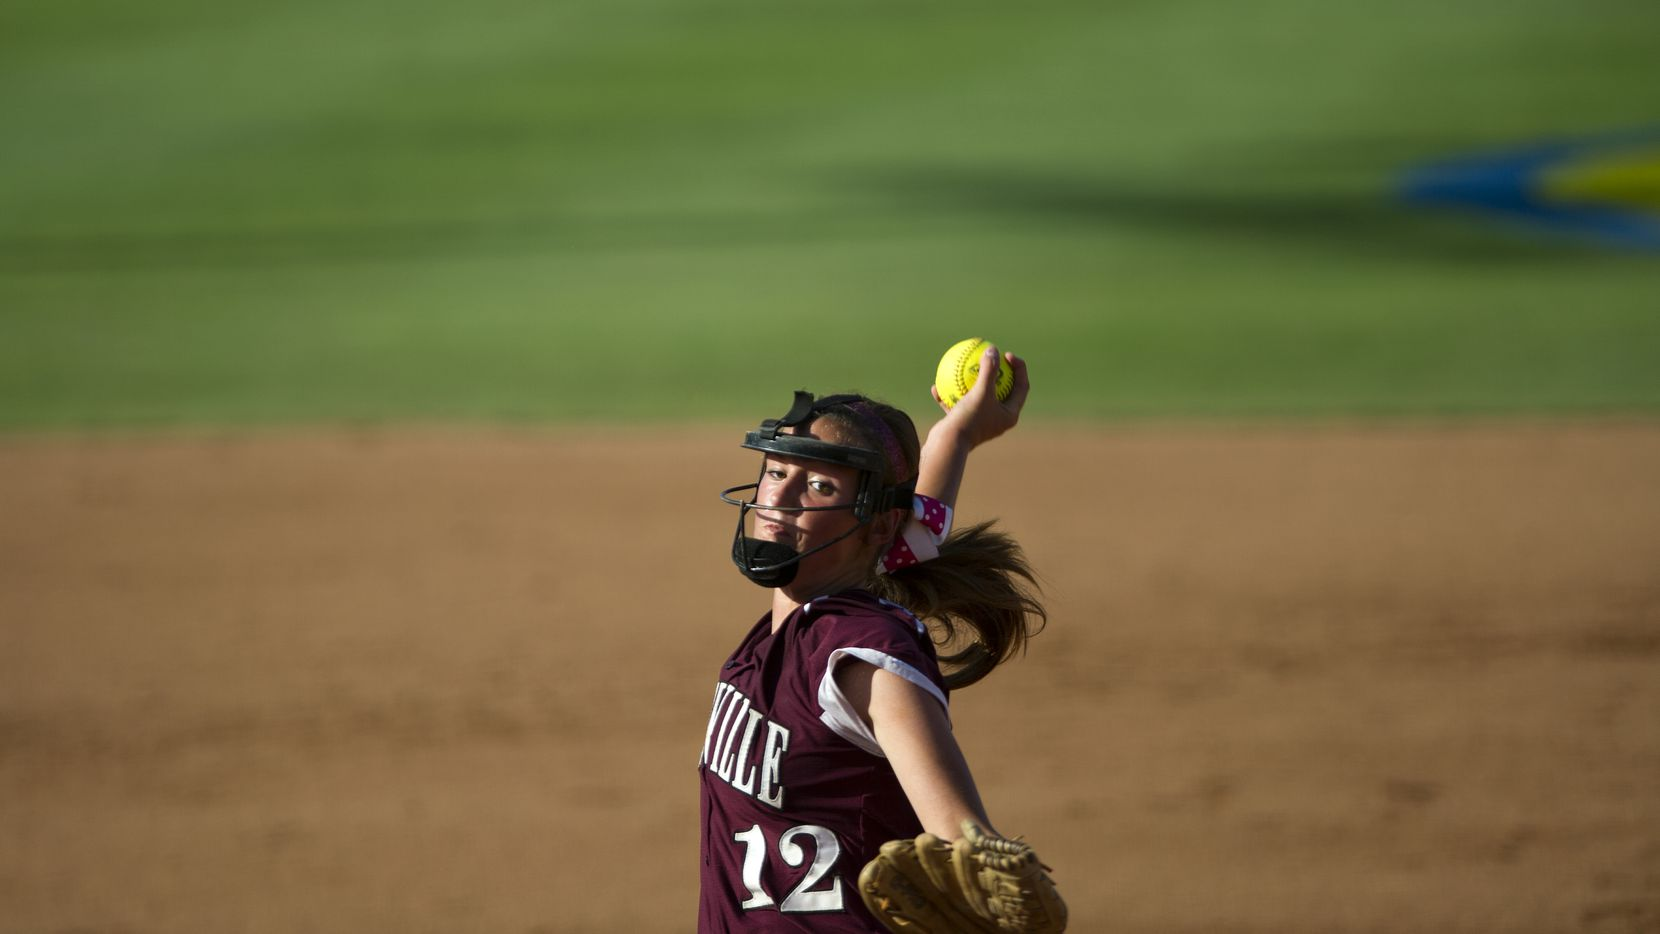 Lewisville pitcher Maribeth Gorsuch pitches during the Class 5A softball state championship between Lewisville and Kingwood at Red and Charline McCombs Field in Austin on June 1, 2013. ORG XMIT: 00017640A